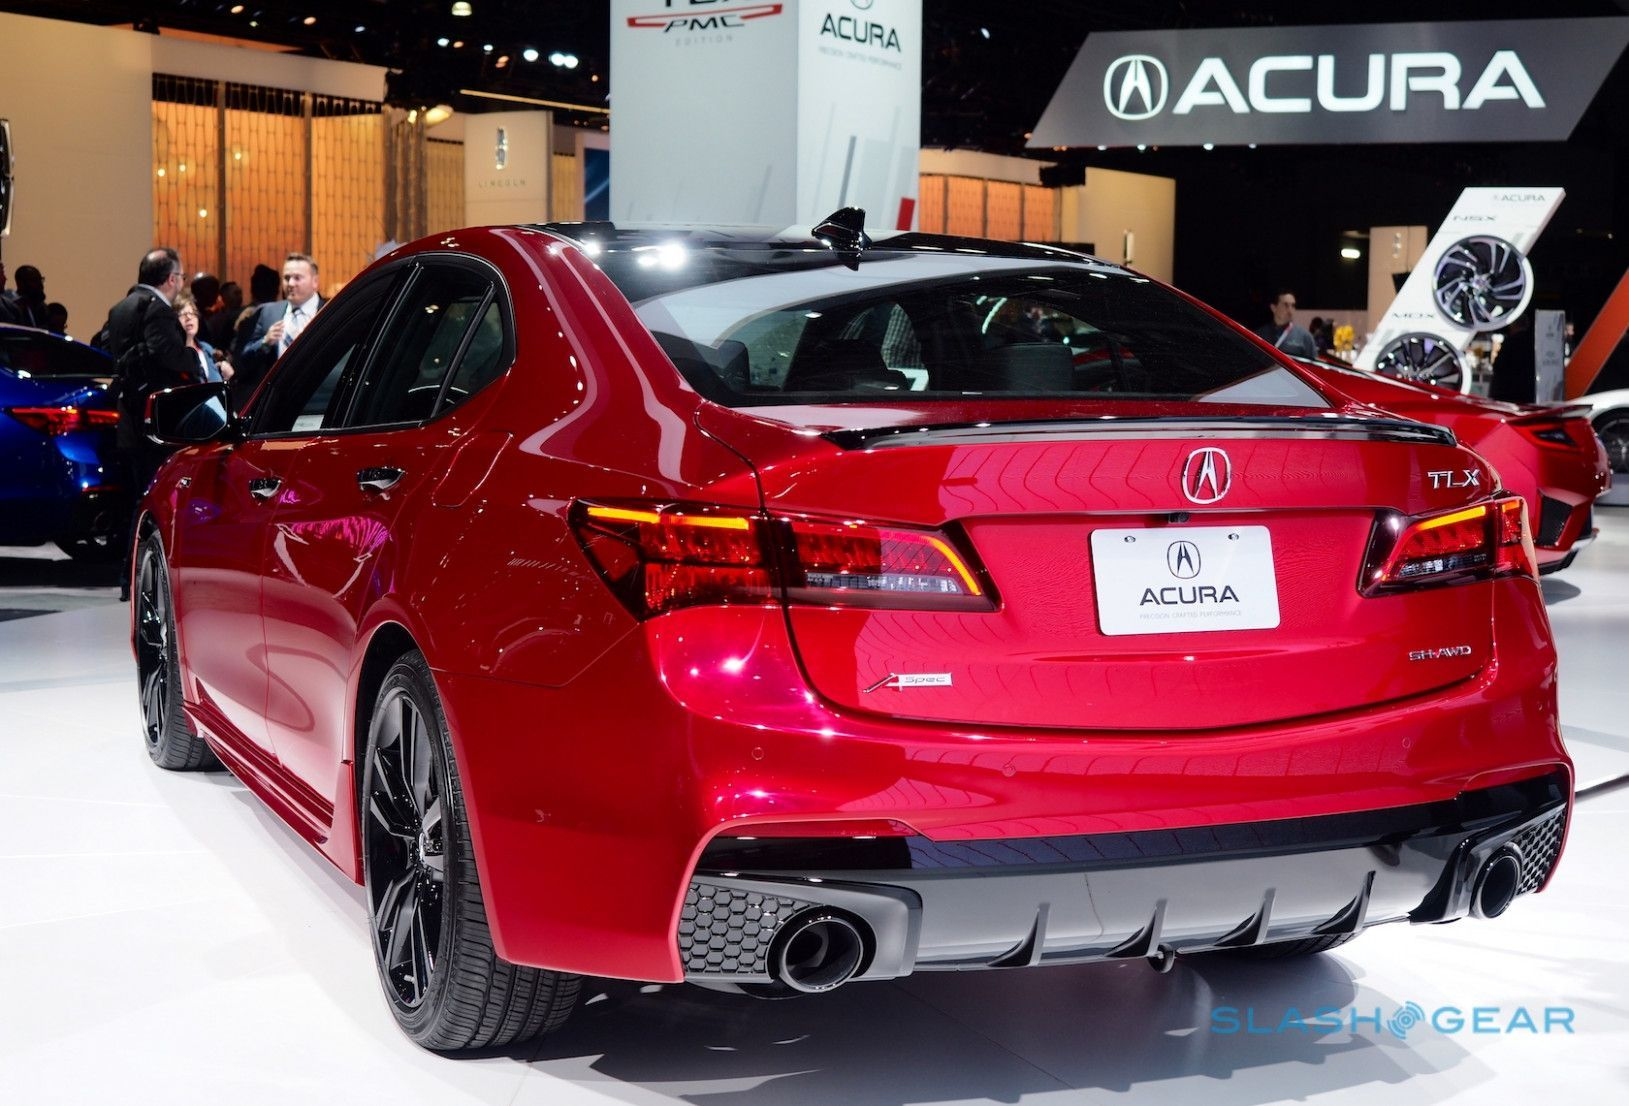 Acura Sedan Models 2020 Spesification 2020 Car Reviews Justcar Info New Car Used Car Information Https Www Justcar Info Acura Sedan Acura Tlx Acura